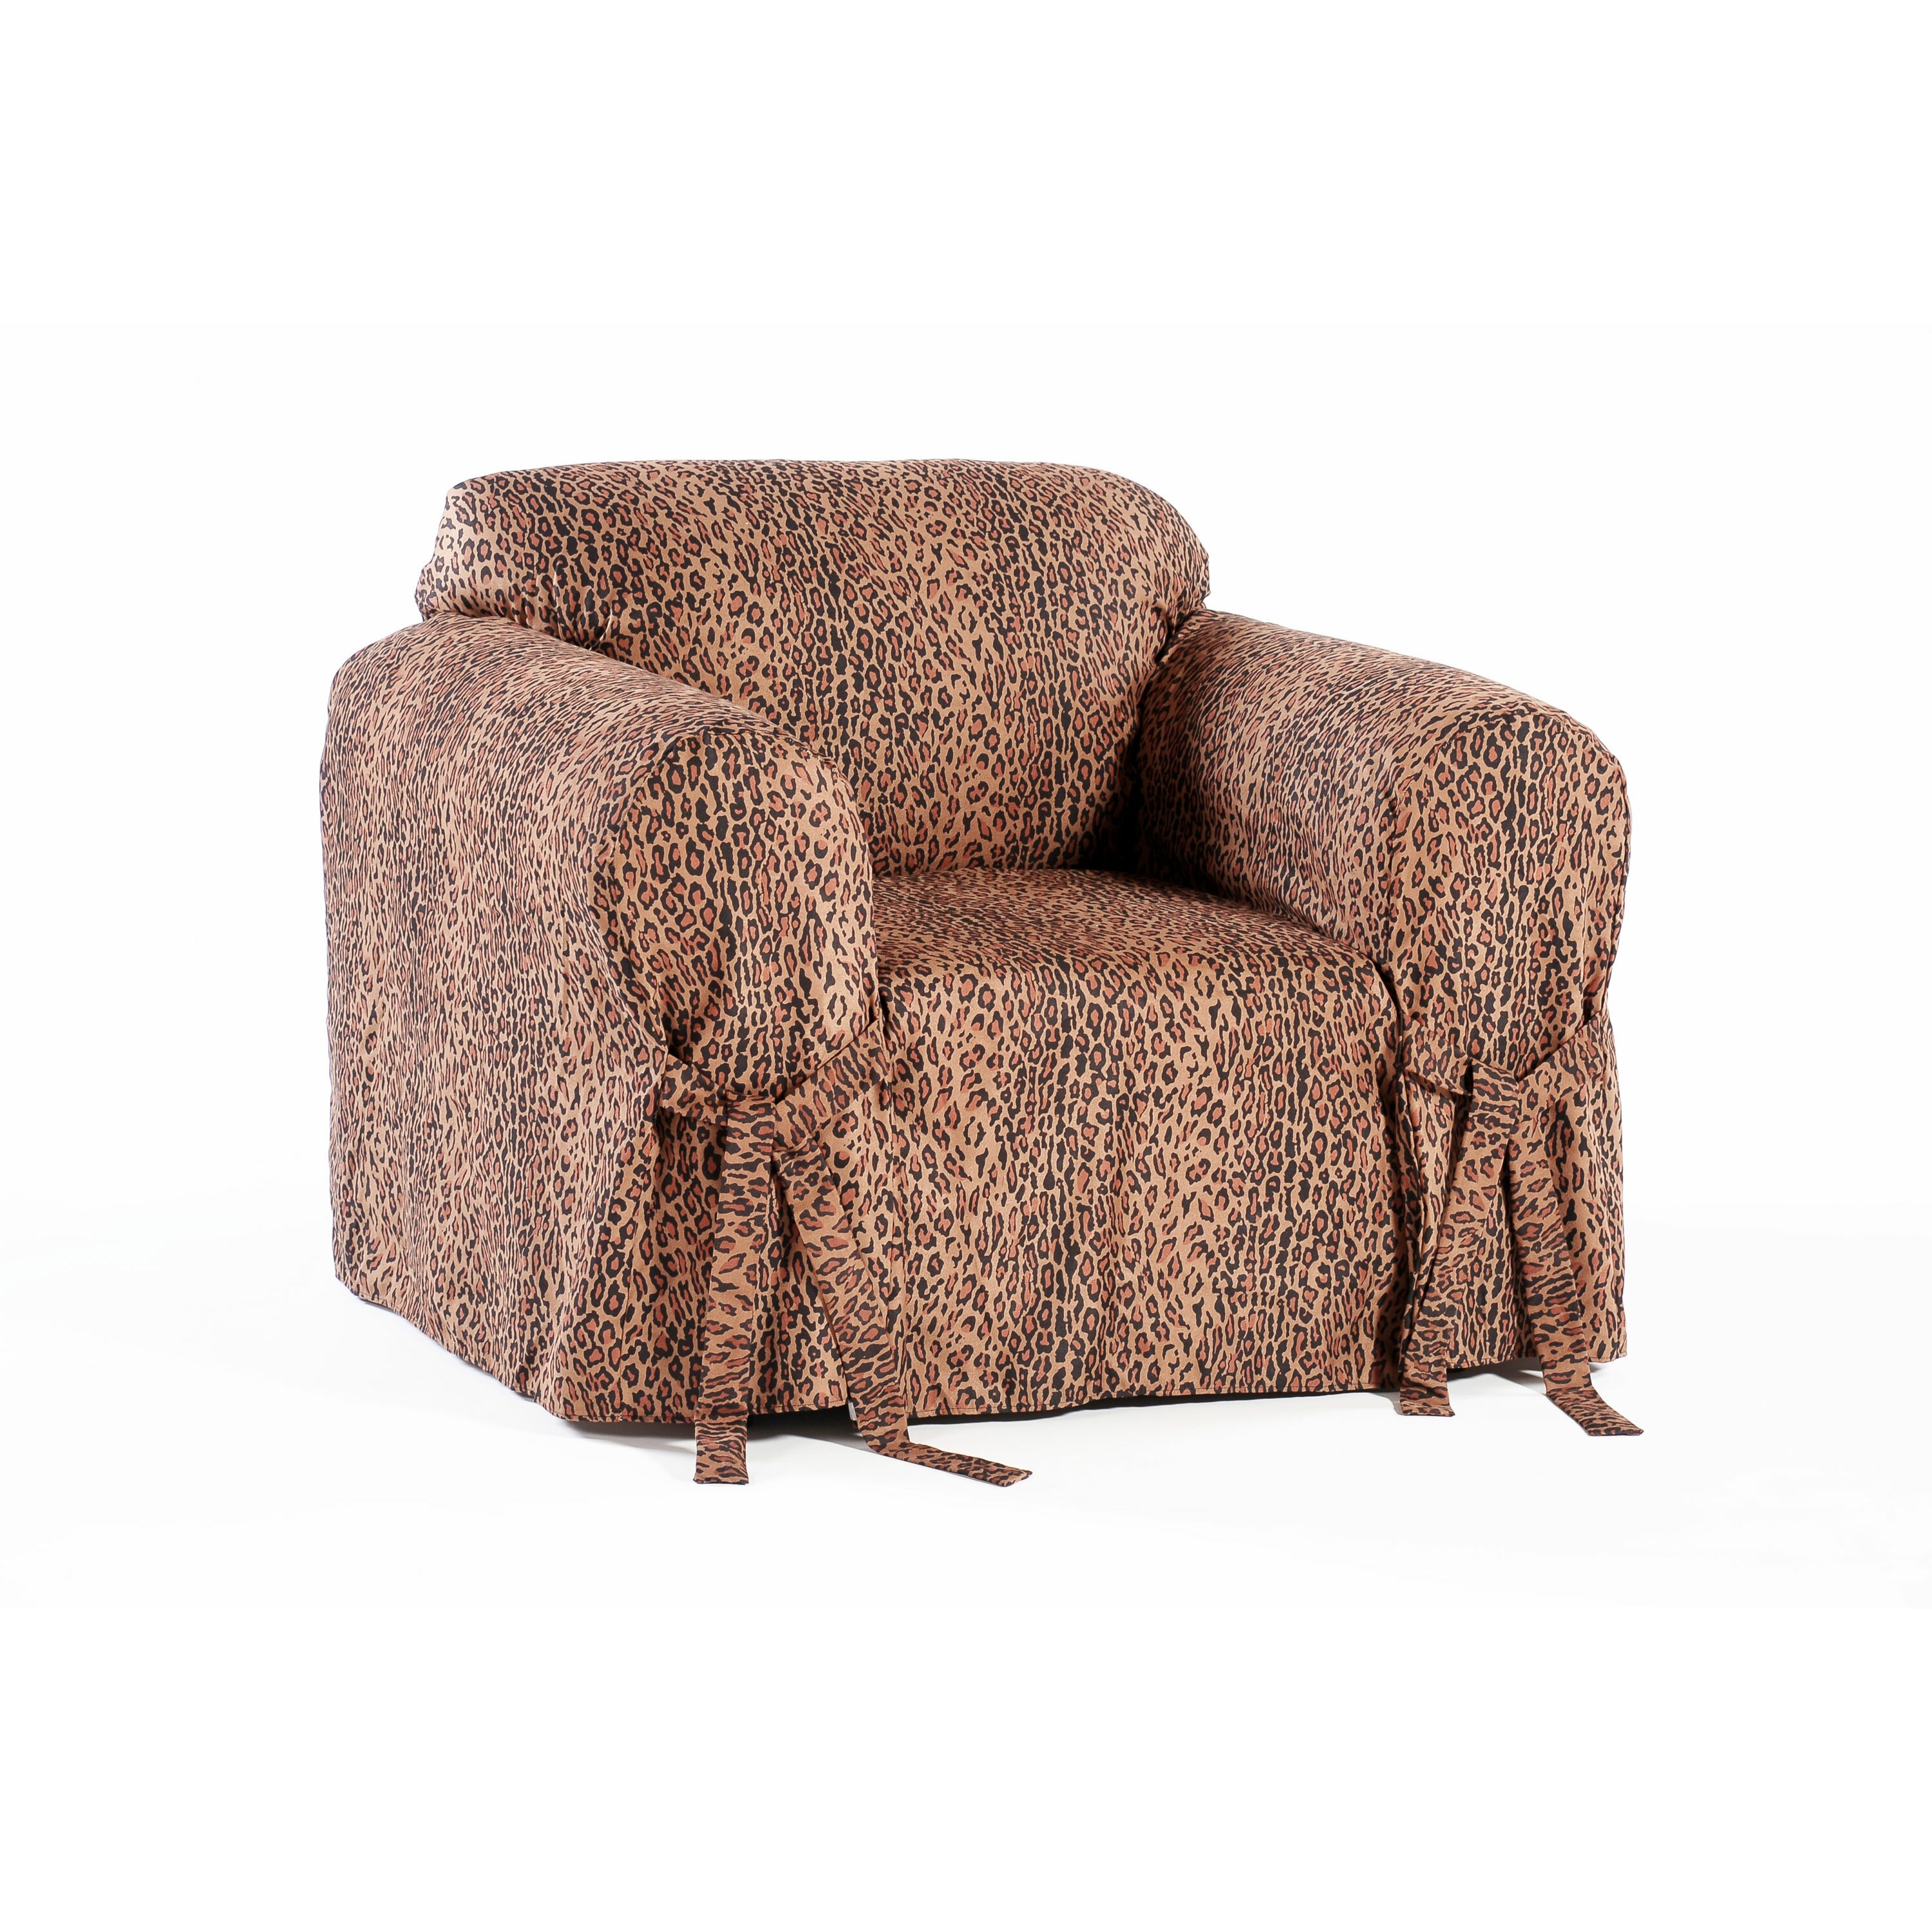 Classic Slipcovers Leopard Print Armchair Slipcover